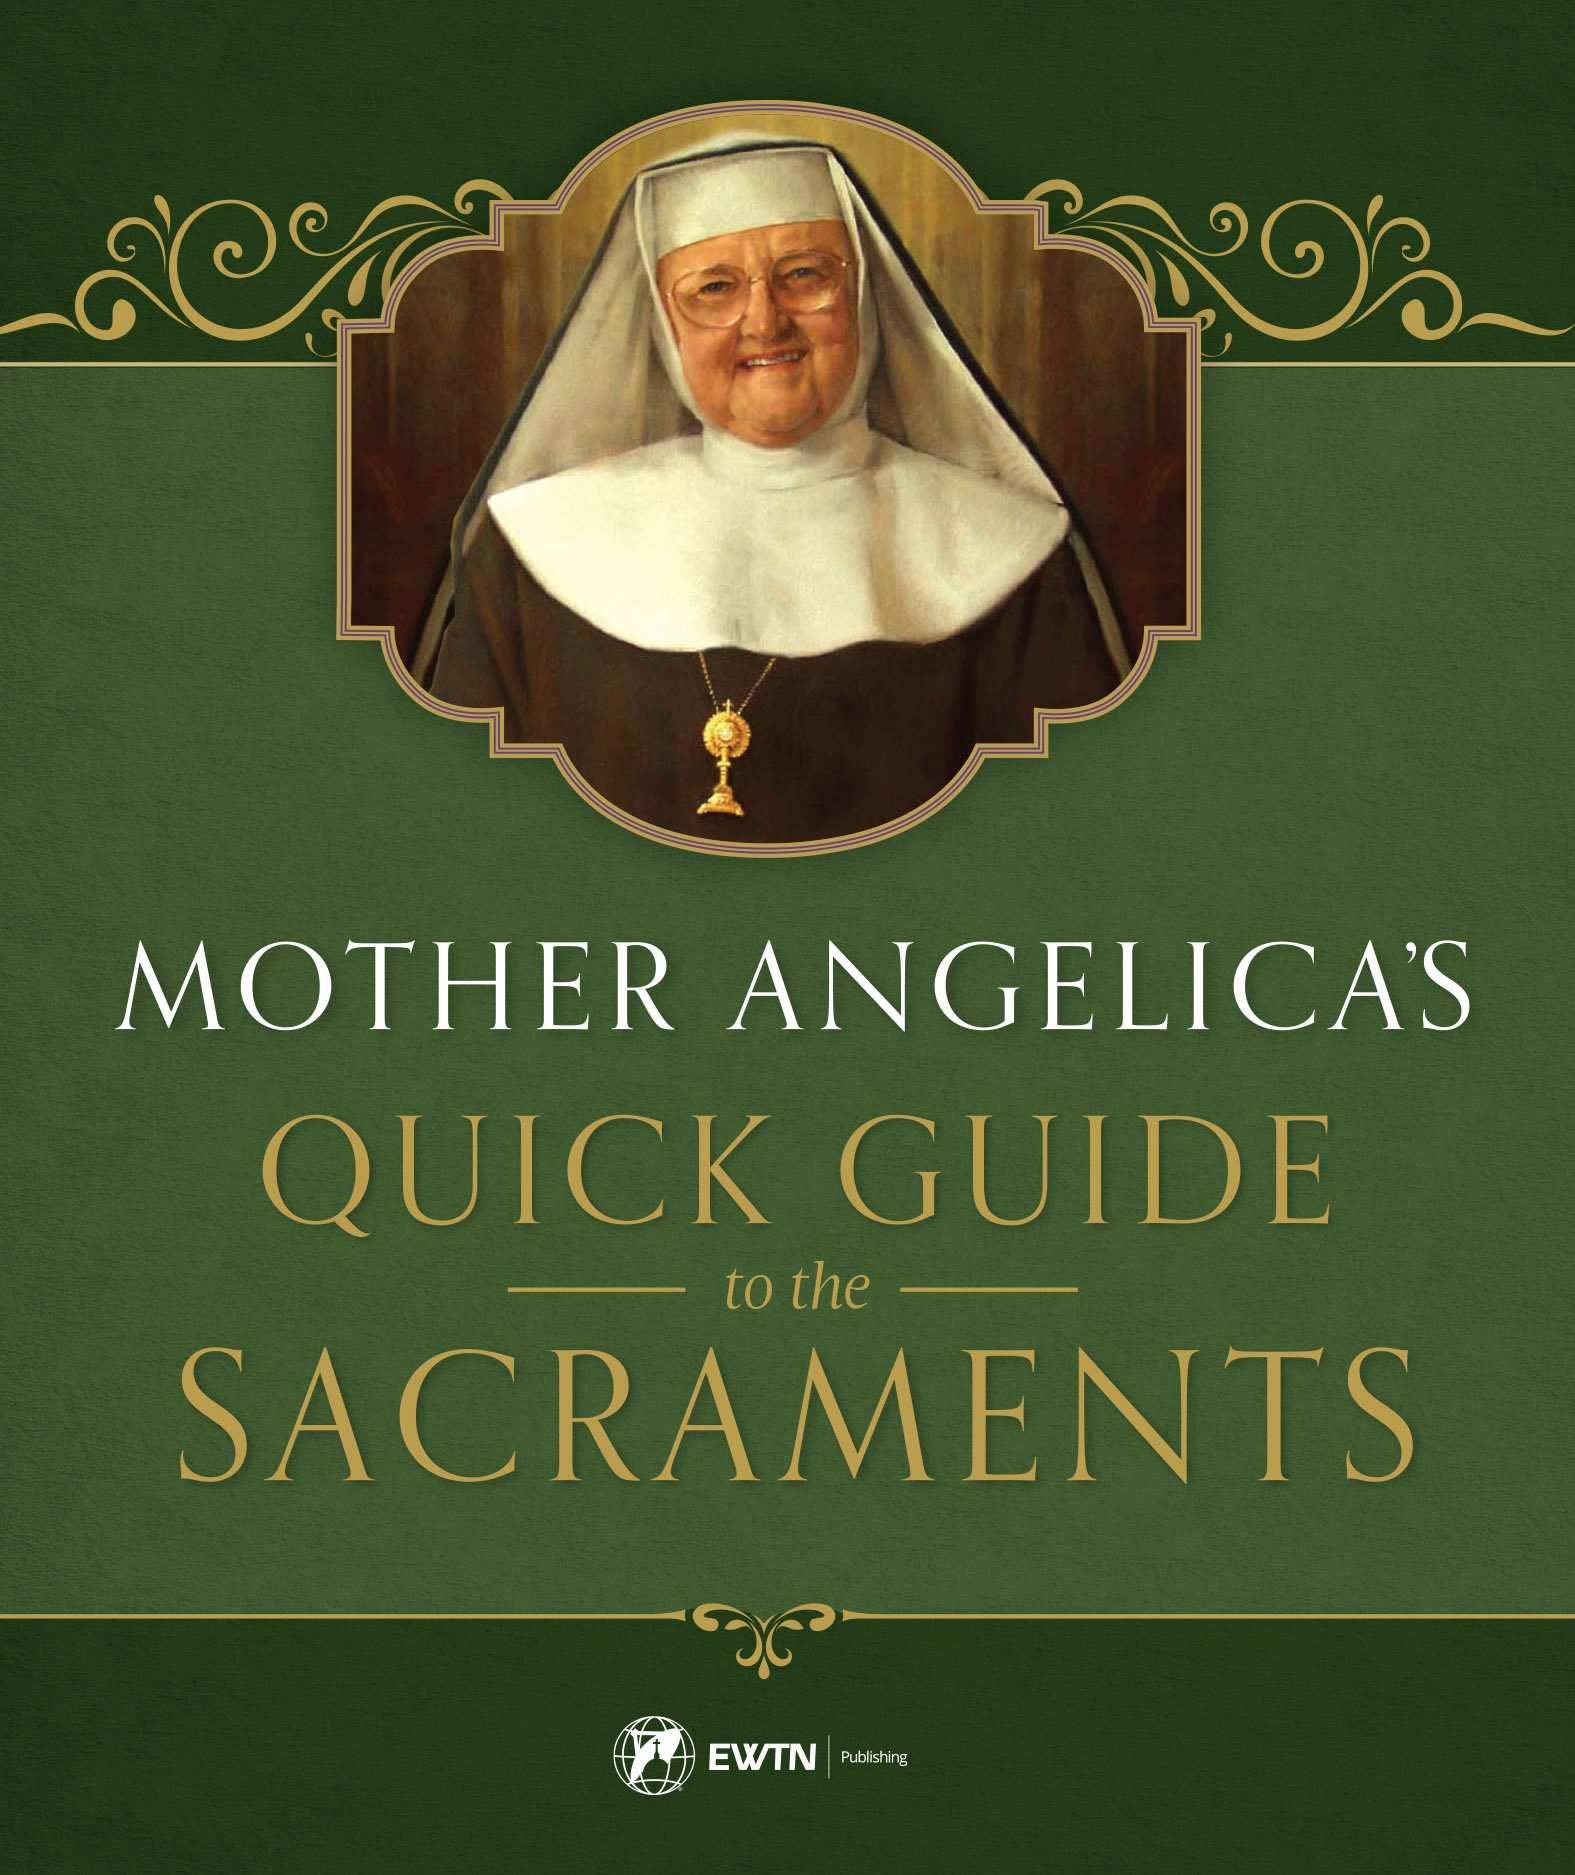 Image result for mother angelica's quick guide to the sacraments